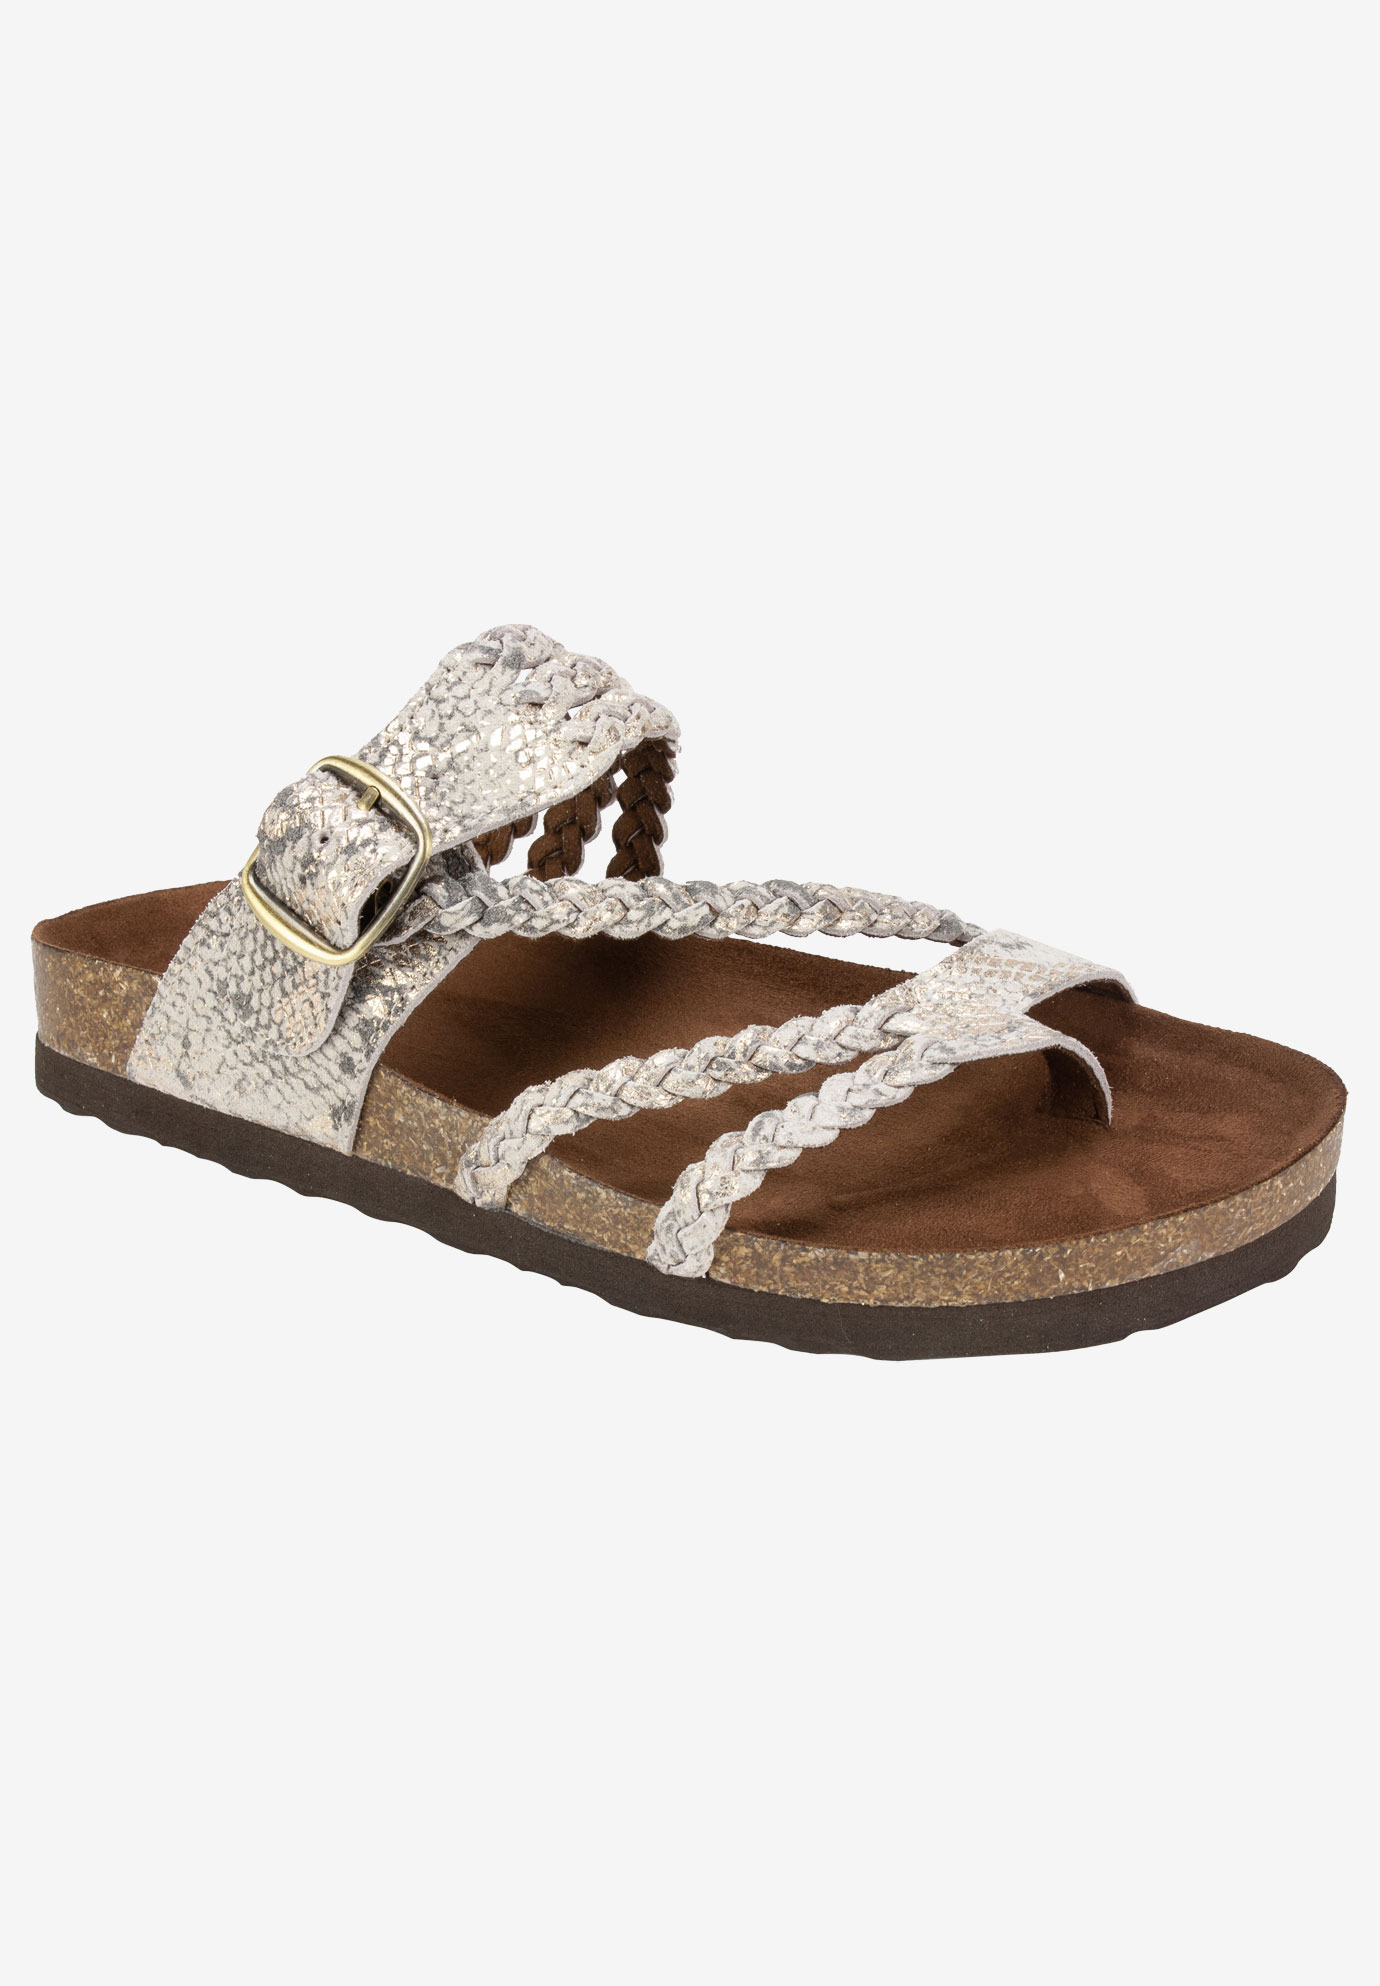 Hayleigh Sandal By White Mountain Plus Size Casual